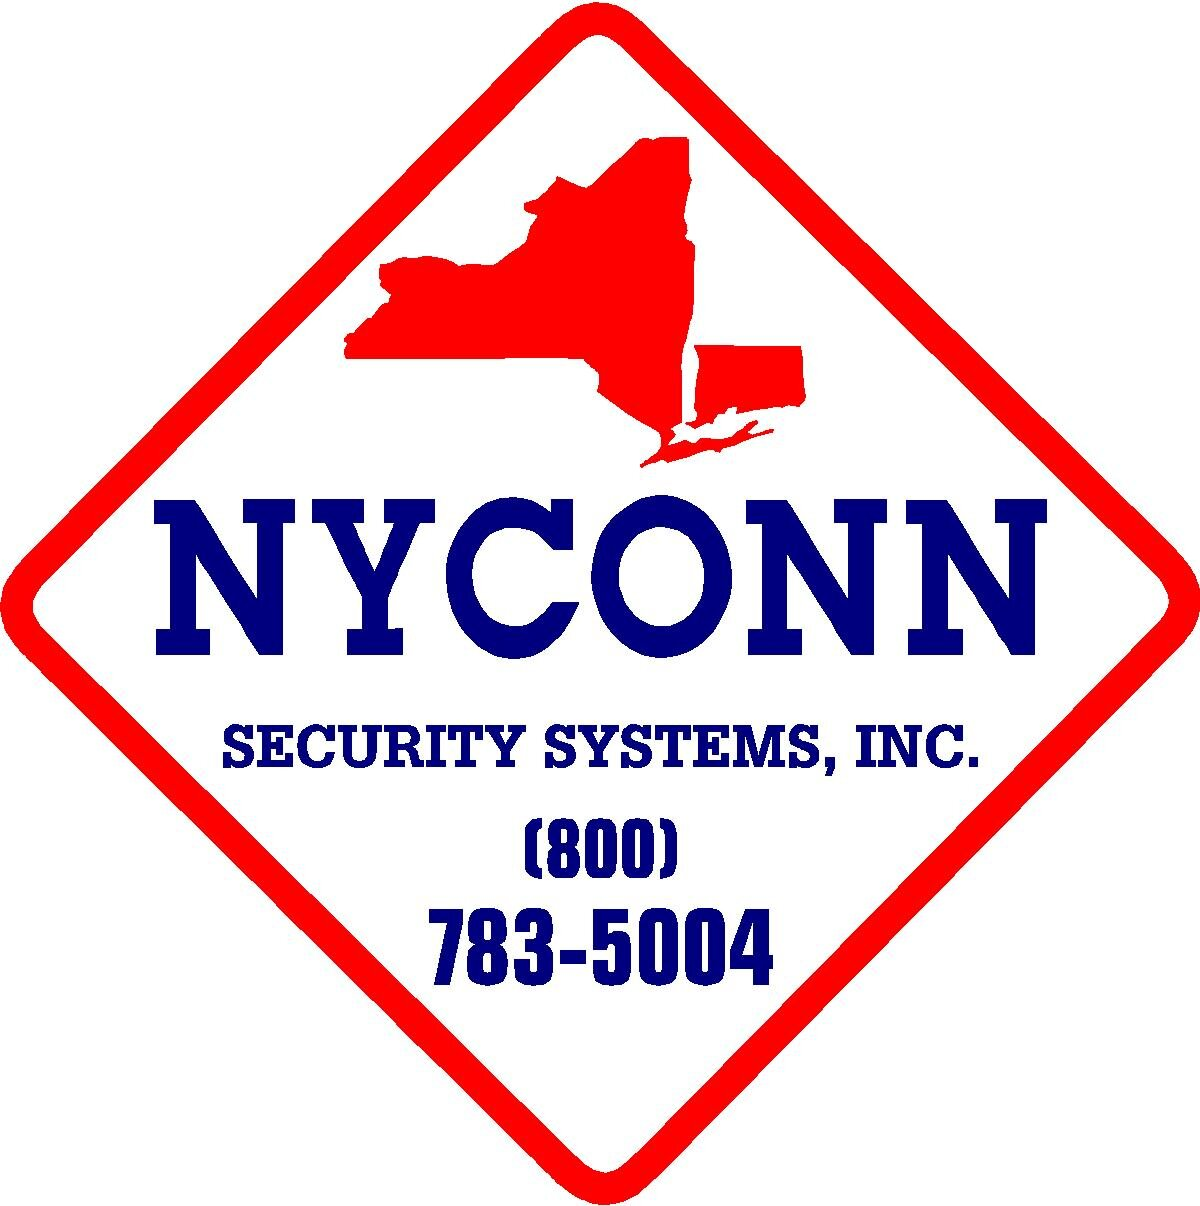 Structured Wiring Nyconn Security Data Diagram Today Systems Nyconnsecurity Twitter Products